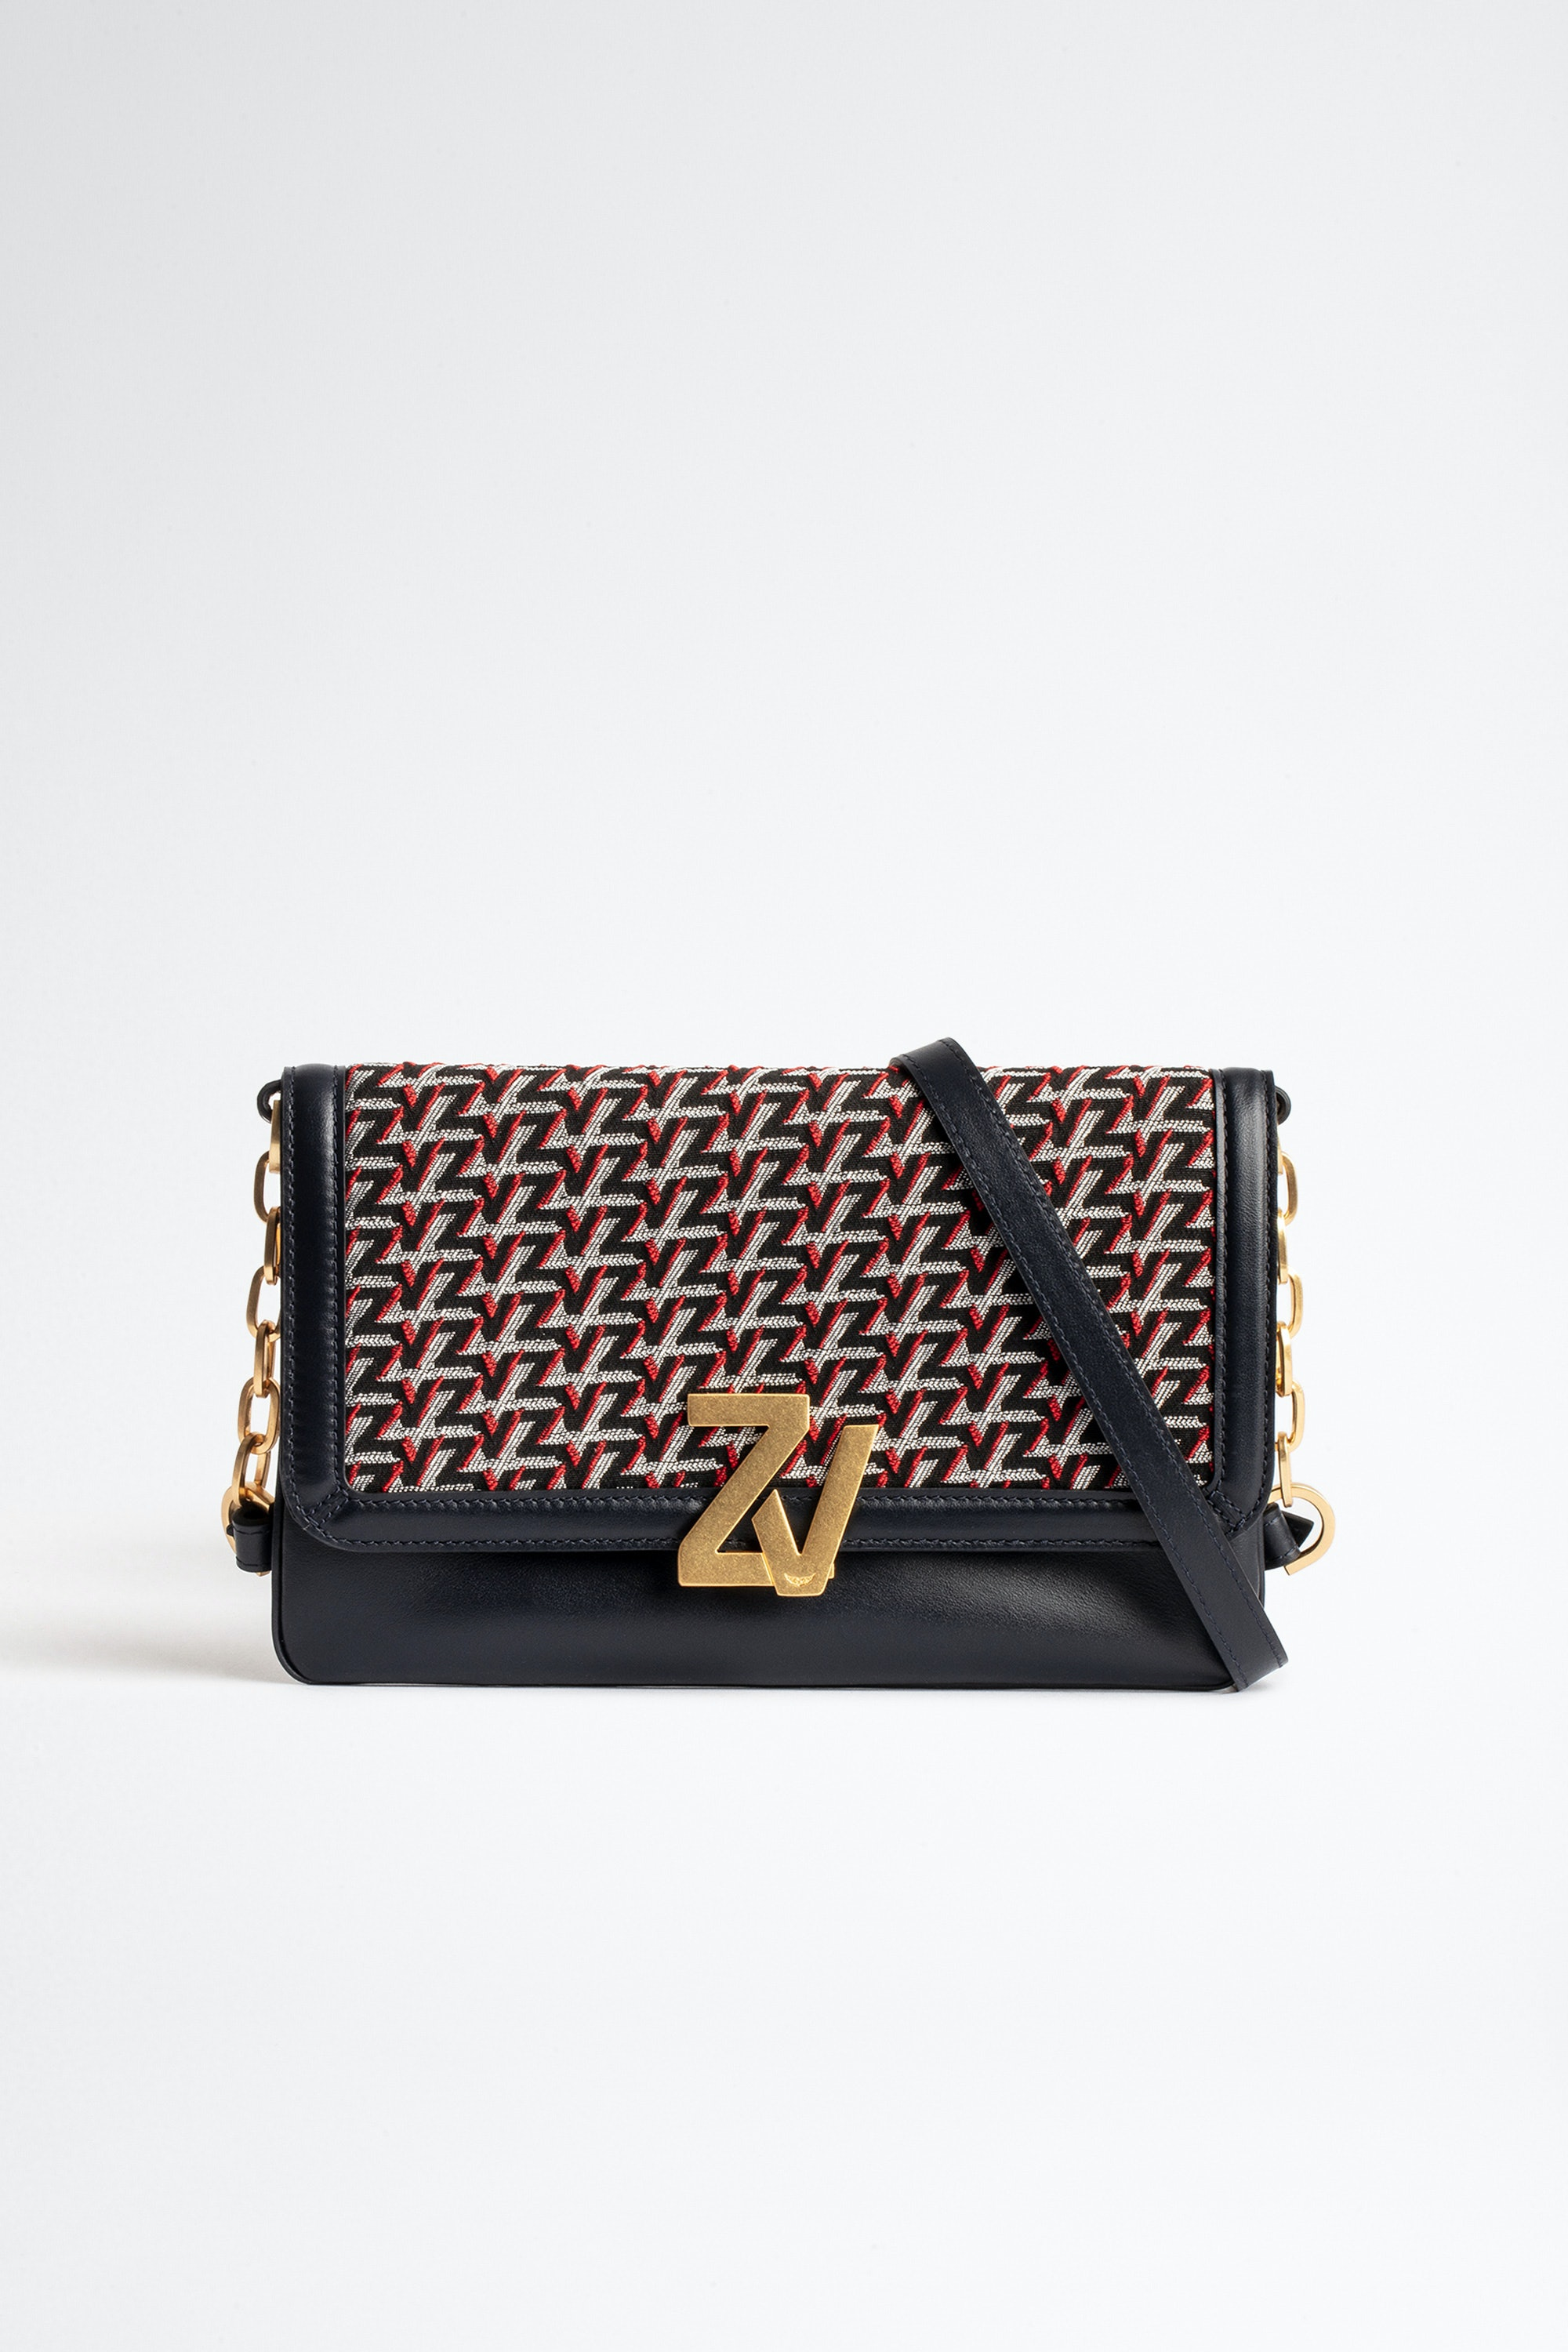 Clutch ZV Initiale La Clutch Monogram